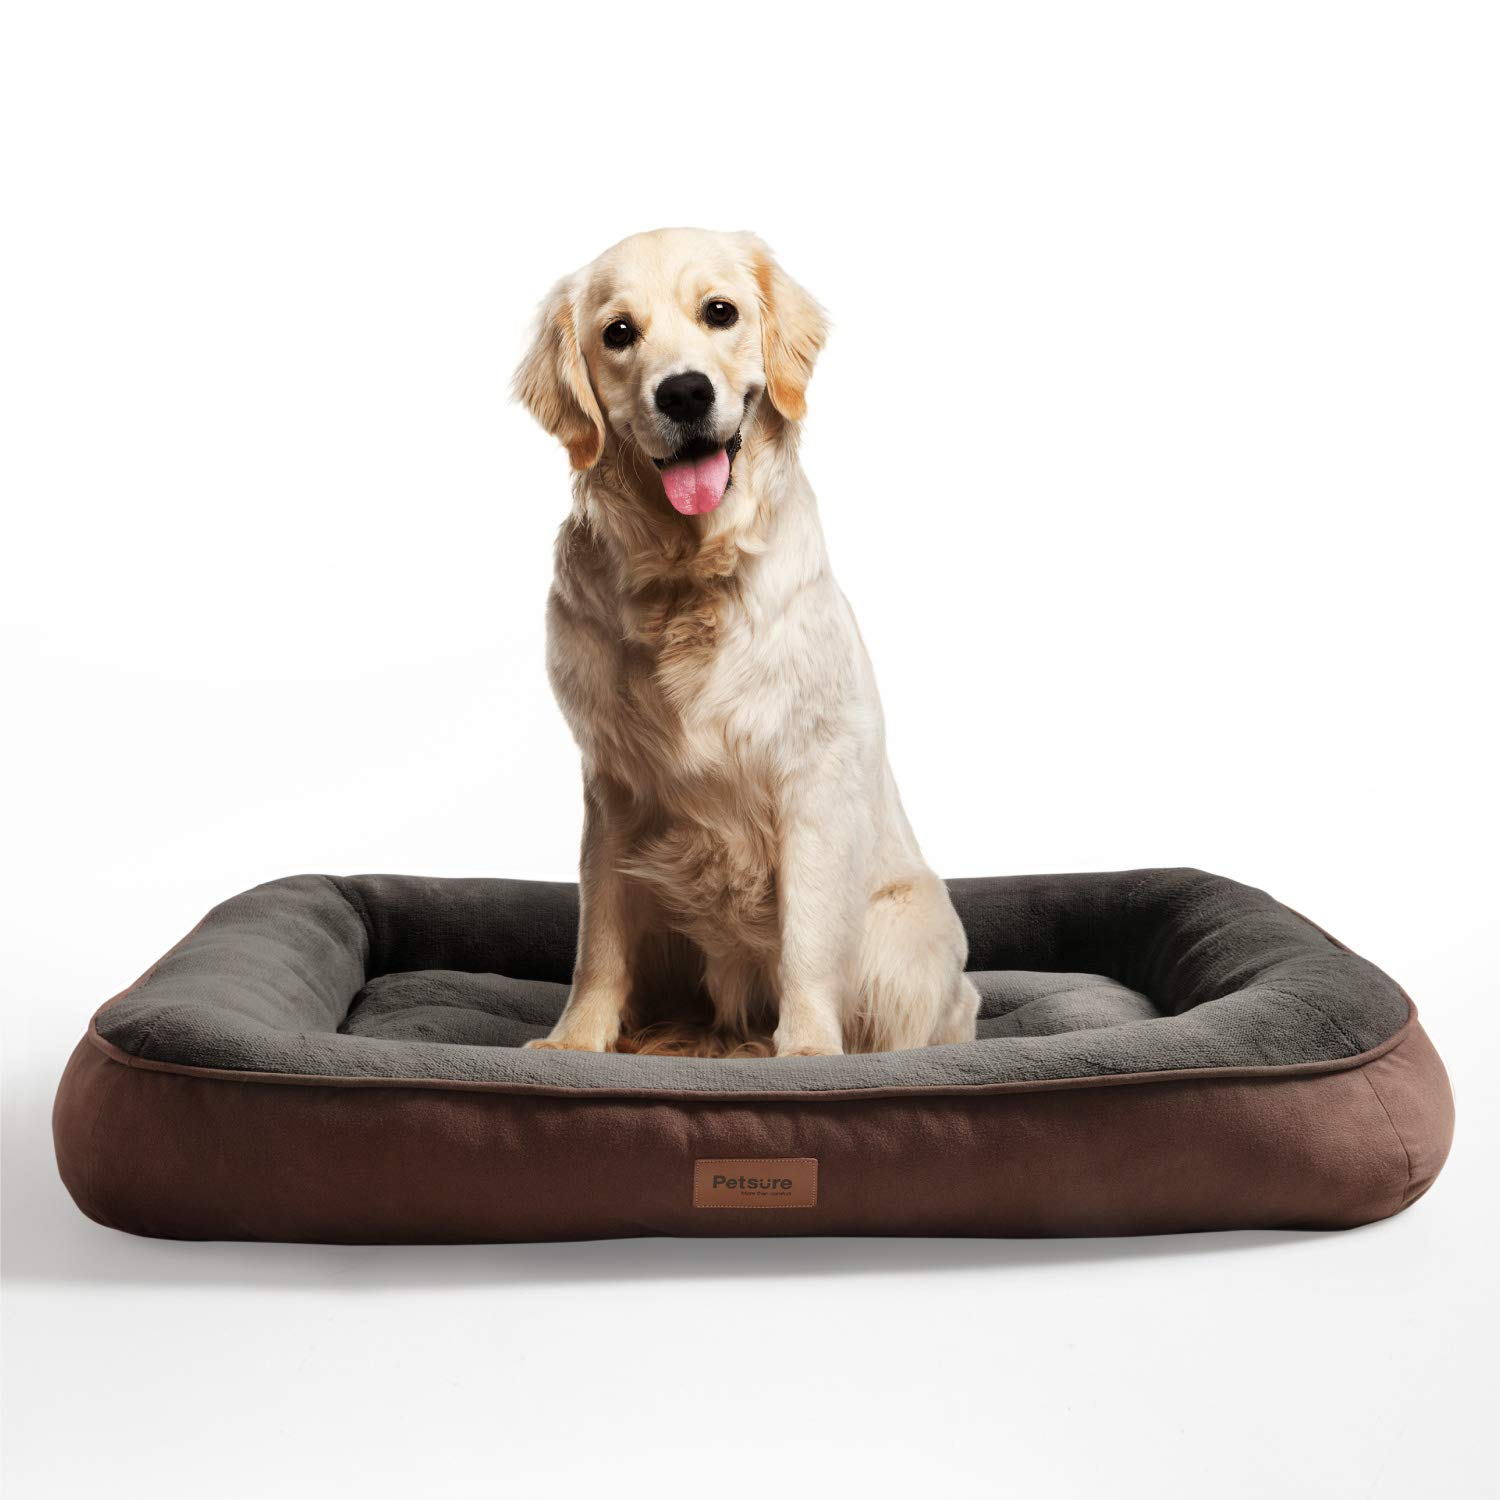 L, 36x27x7 inches Grey Low Bumper Pet Bed with Ultra-Soft Bolster Machine Washable for Small Medium Petsure Plush Dog Bed Large Dogs Up to 70 lbs